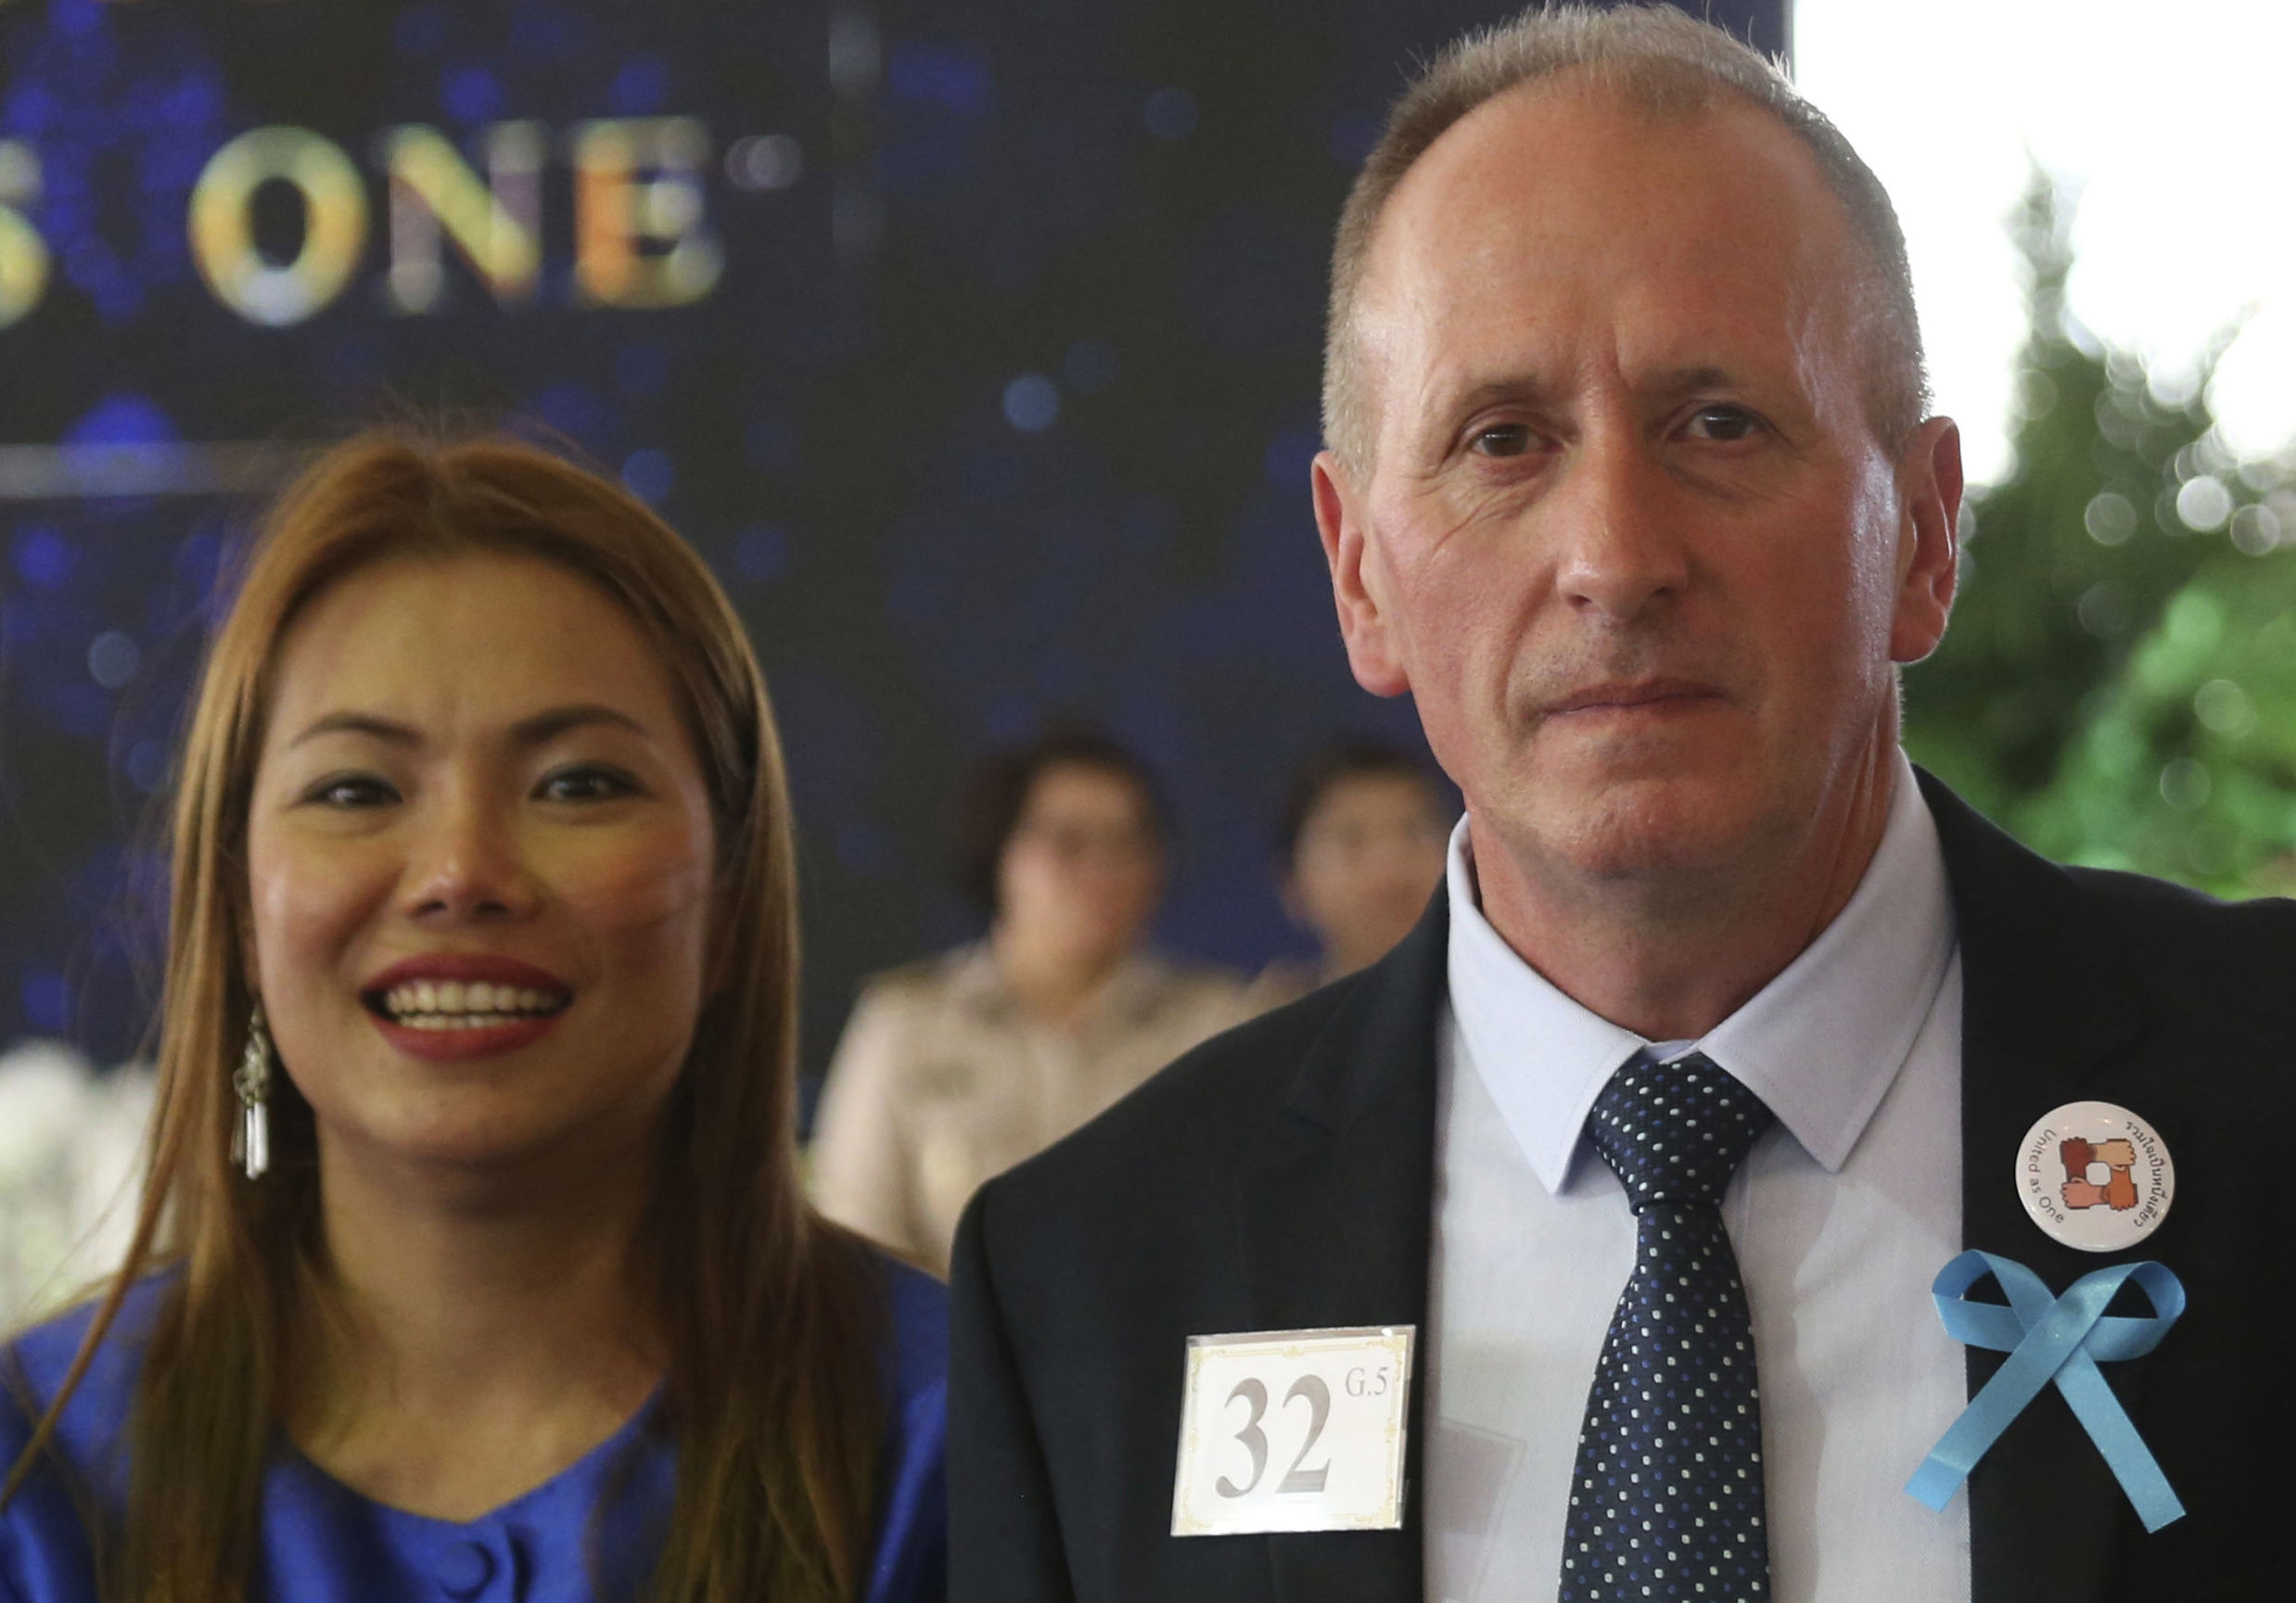 British cave diver Vernon Unsworth and his wife Woranan in Bangkok in 2018. Unsworth is suing Elon Musk